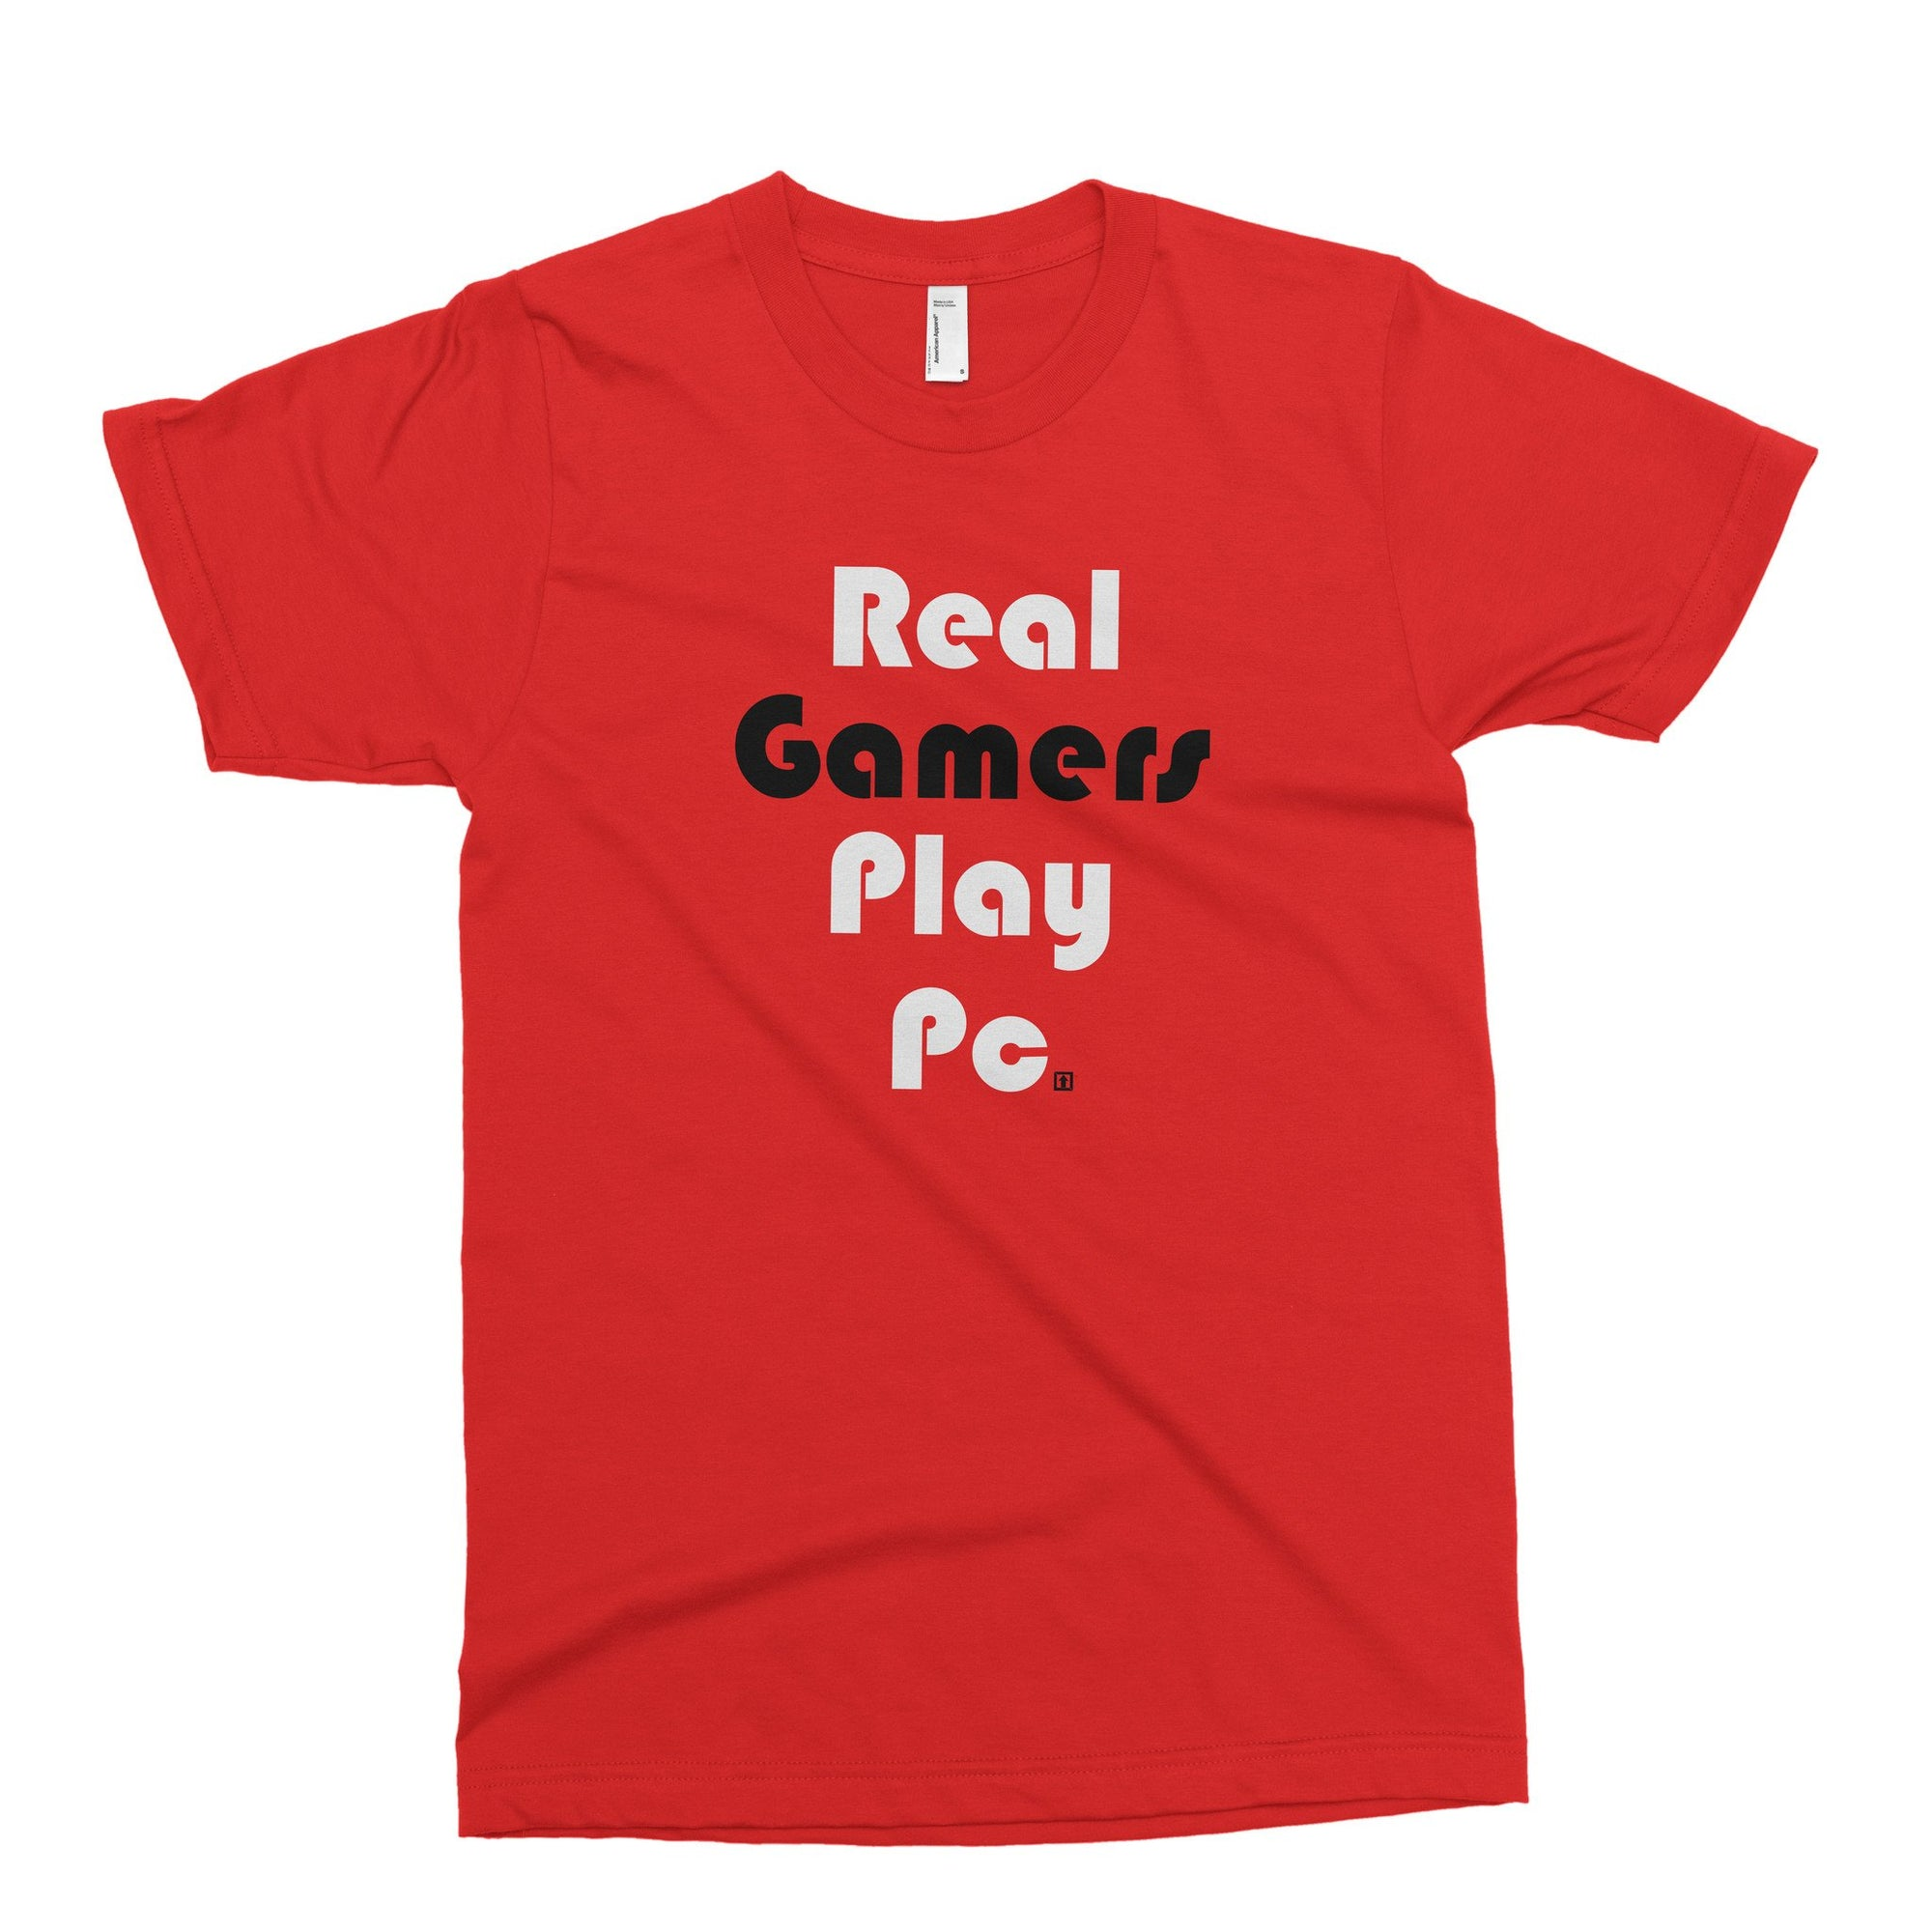 Real Gamers T-SHIRT - Square Boy Clothing